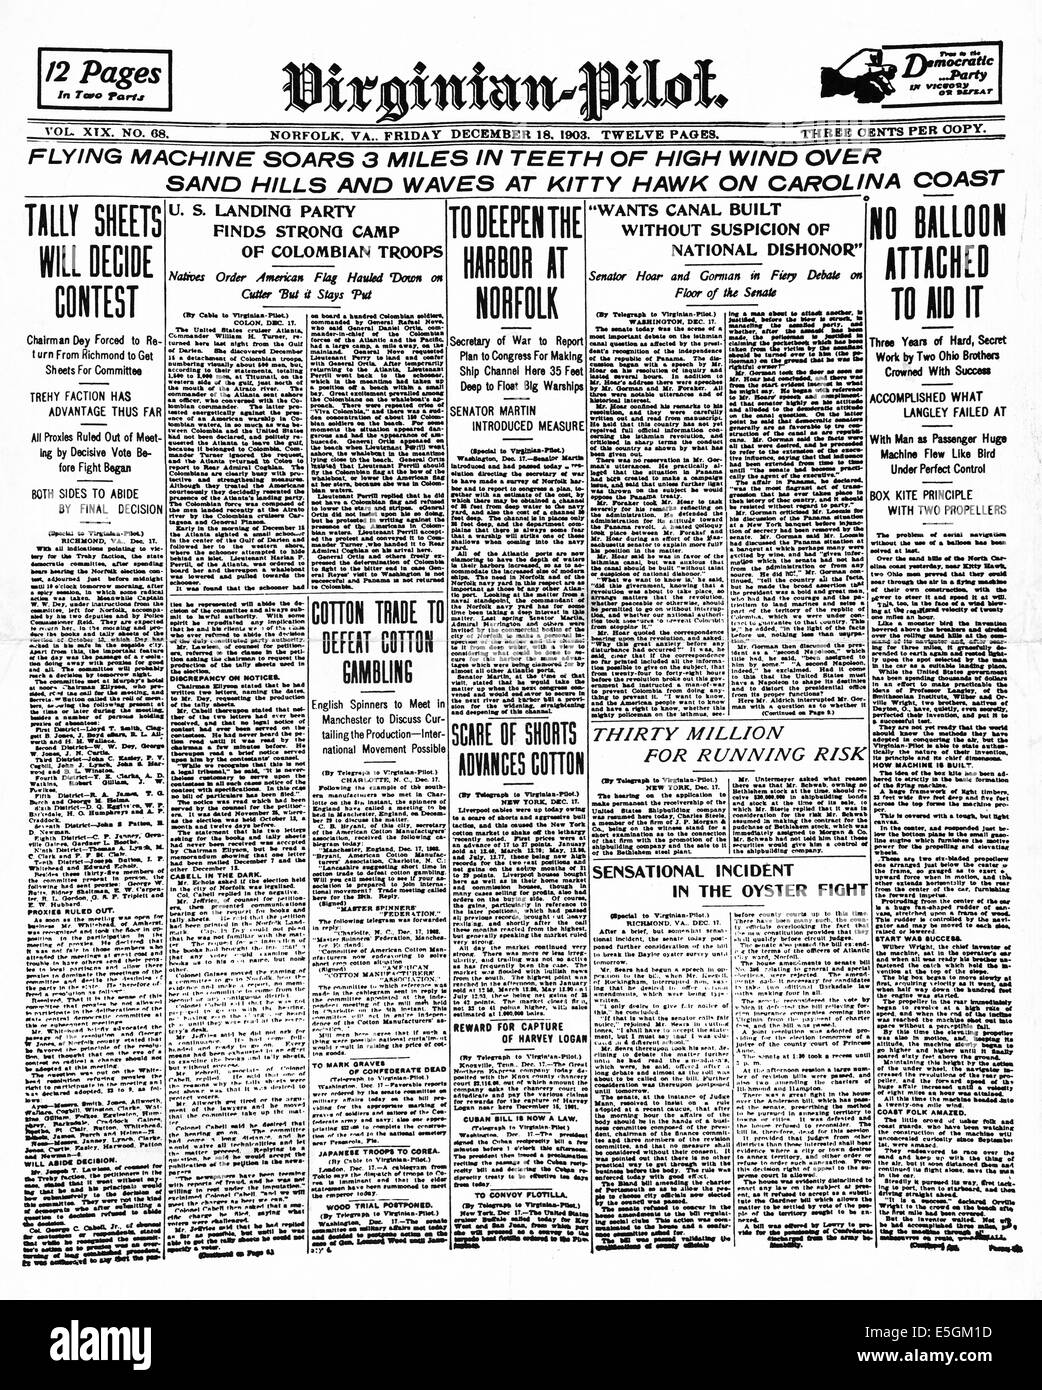 First Flight Kitty Hawk 1903 inside 1903 virginian pilot front page reporting the first flightthe